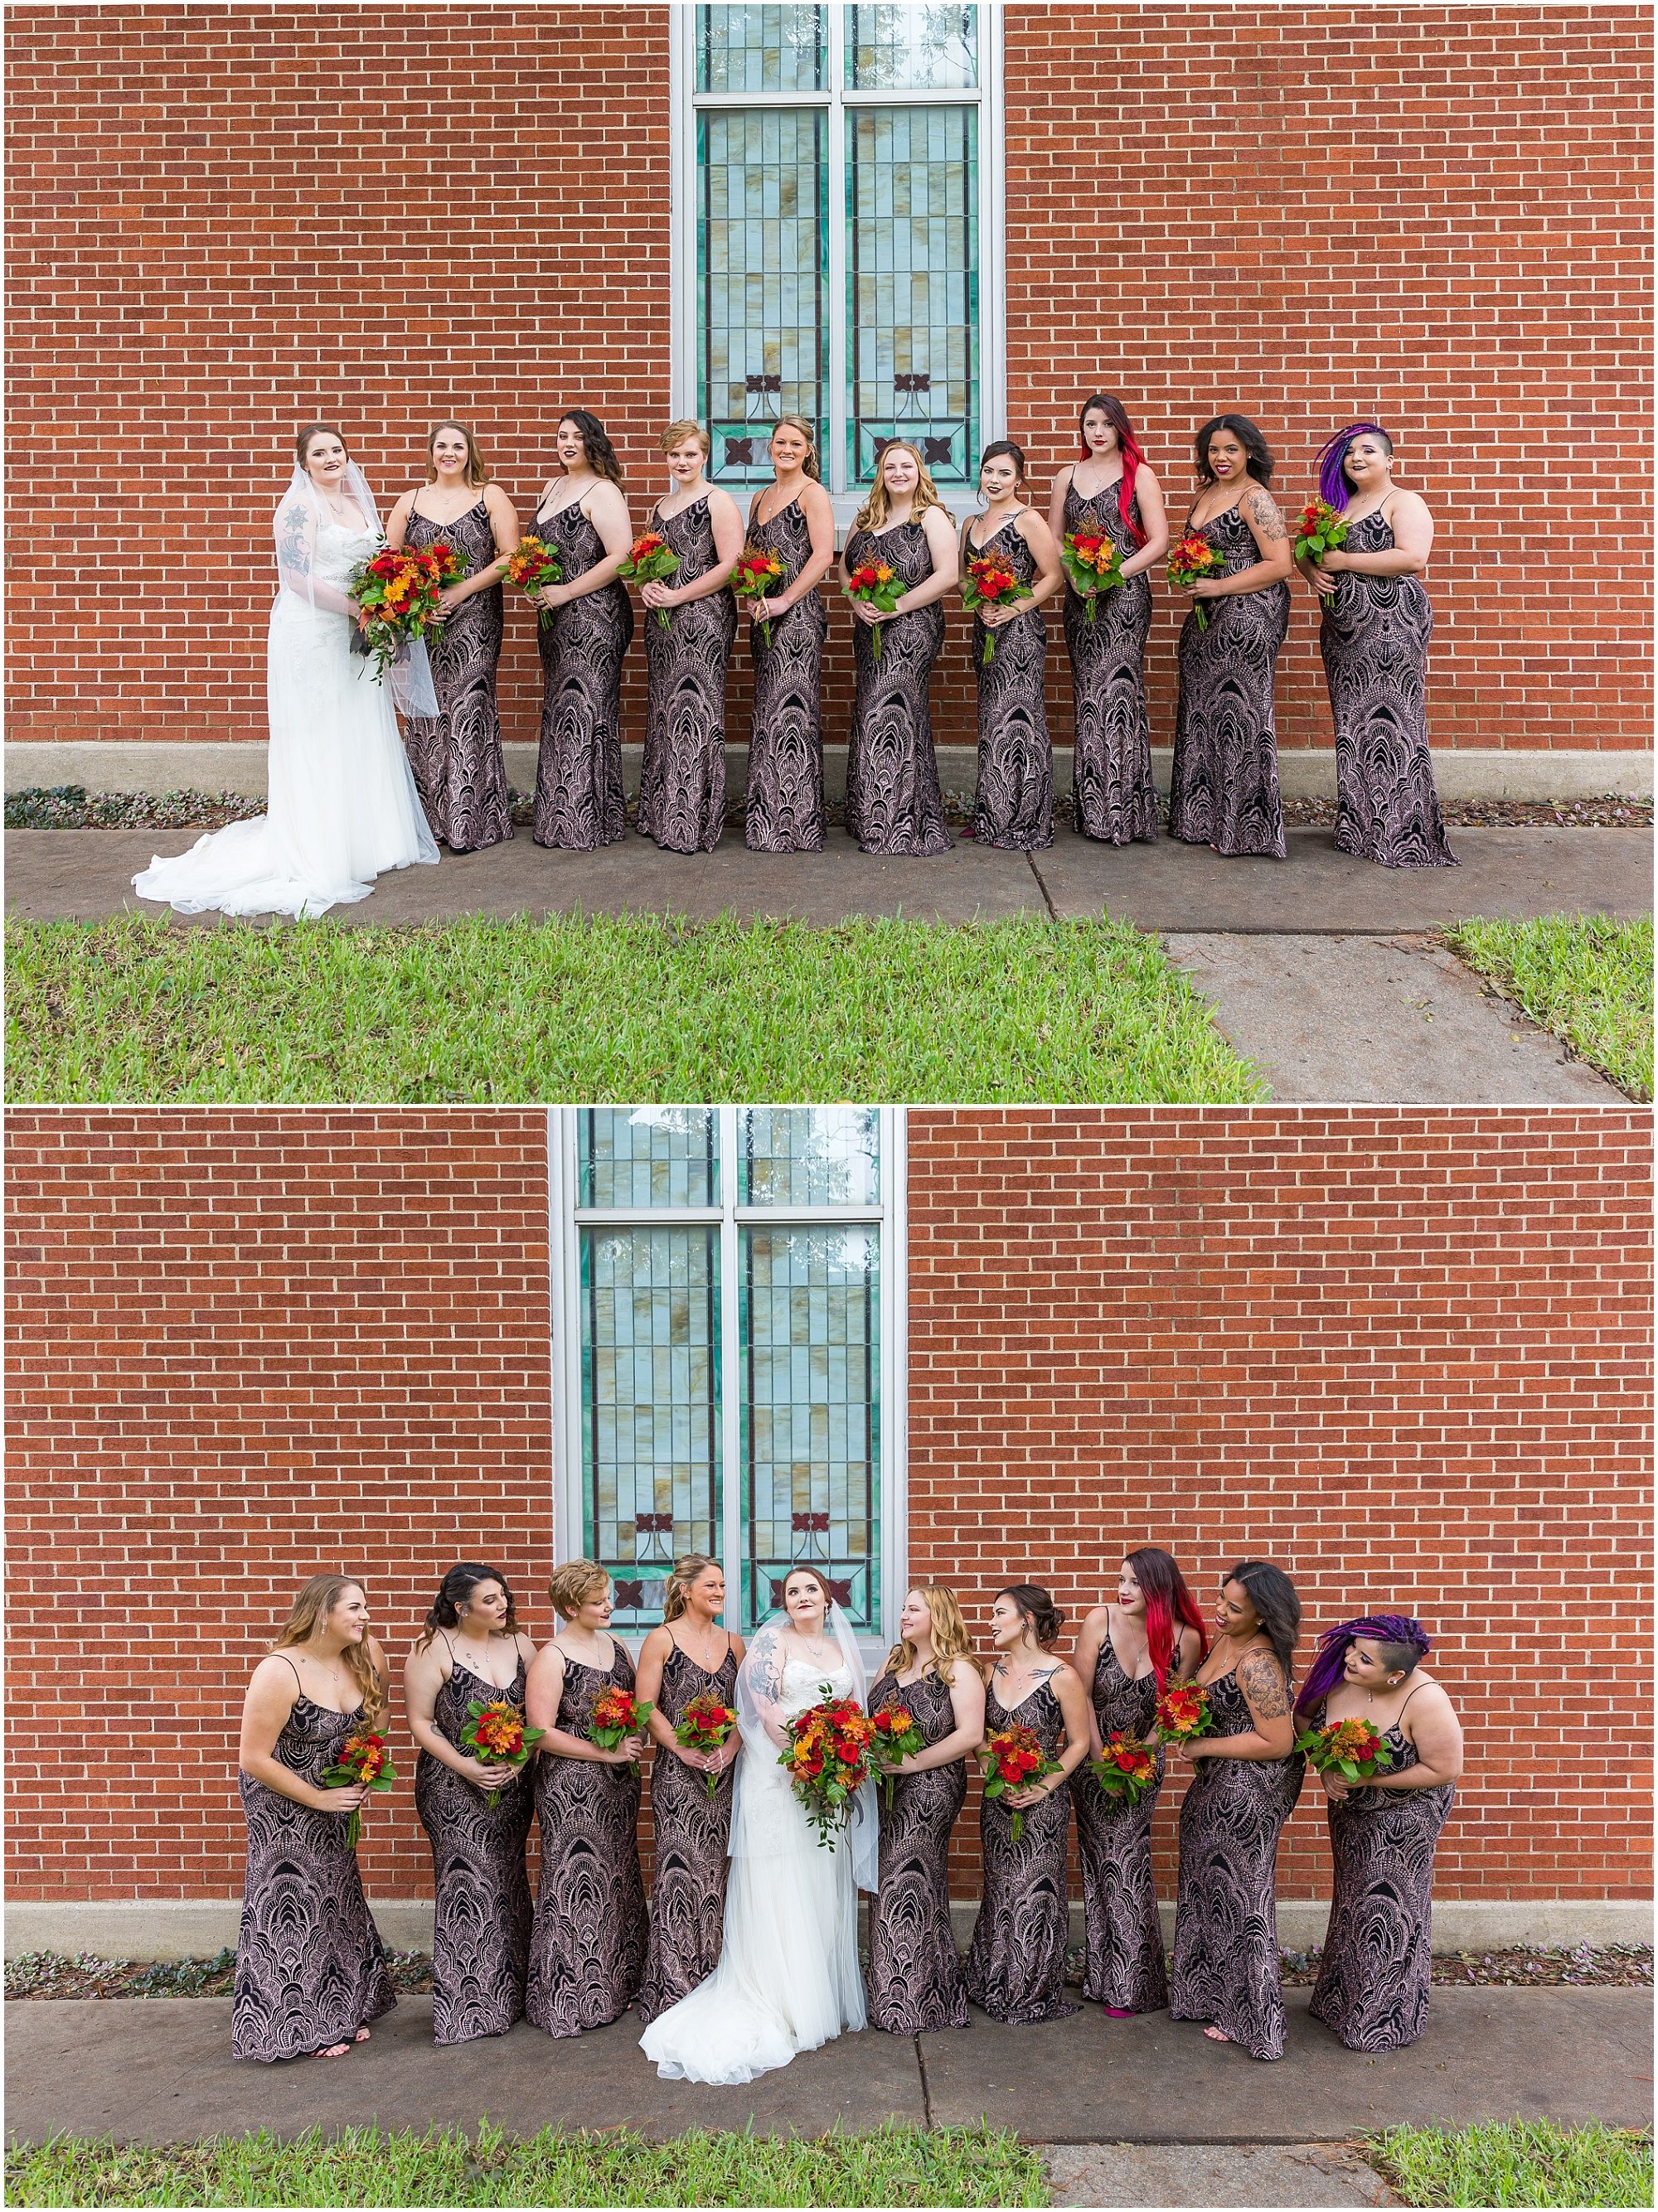 Gothic bridesmaid dresses for Fall wedding in Waco, TX - Jason & Melaina Photography - http://jasonandmelaina.com